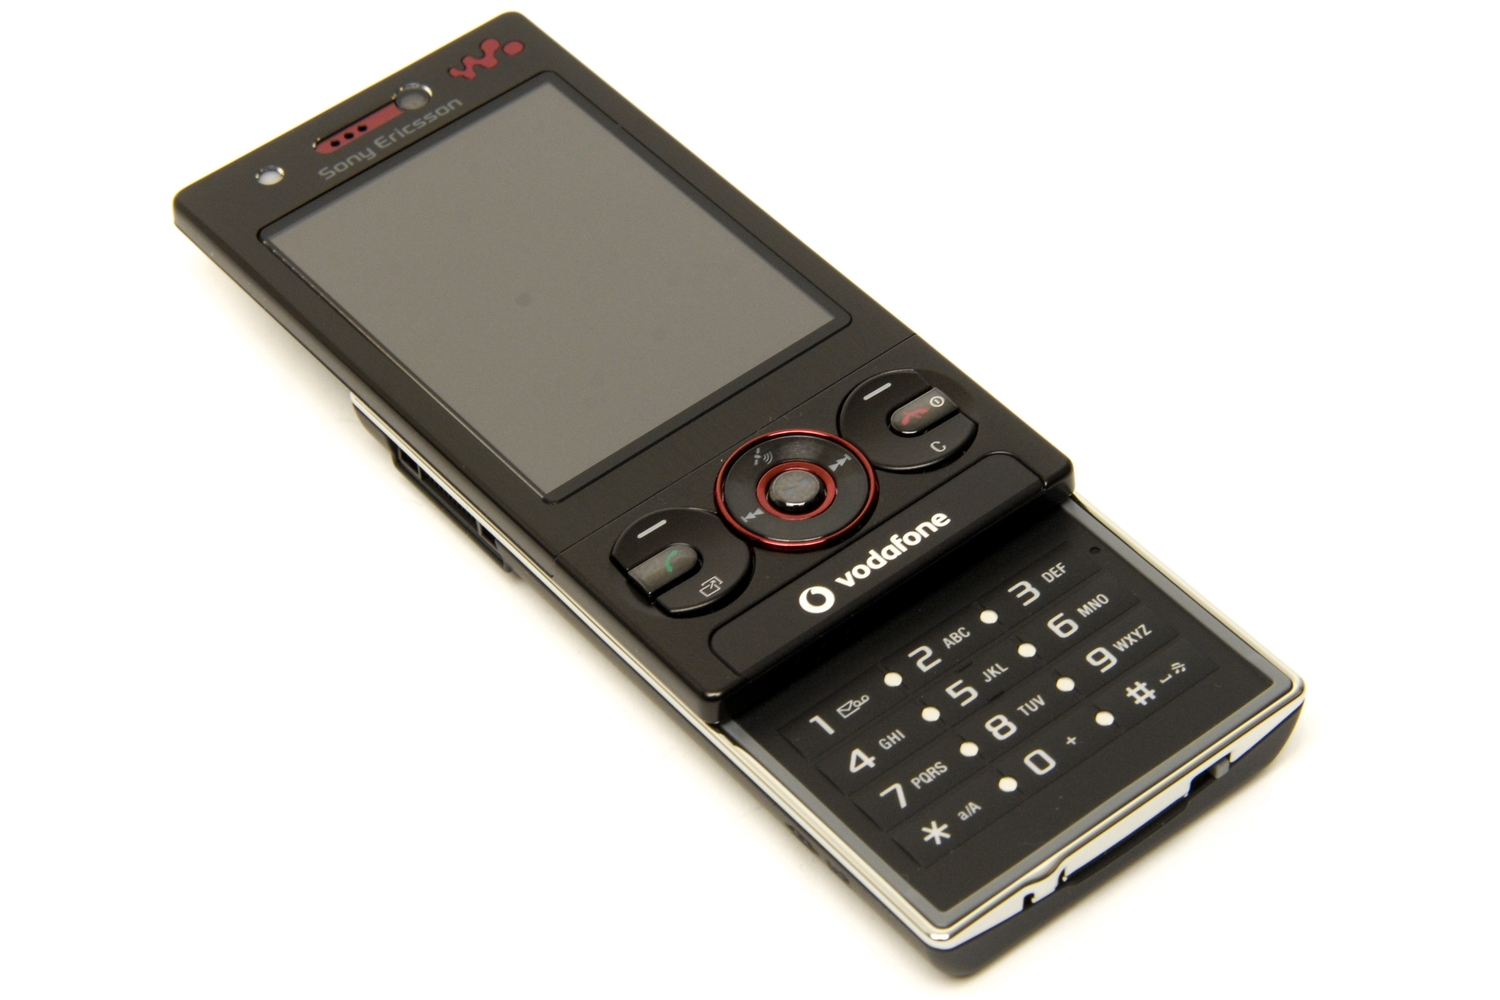 sony ericsson w715 review sony ericsson 39 s w715 walkman phone is exclusive to vodafone and. Black Bedroom Furniture Sets. Home Design Ideas